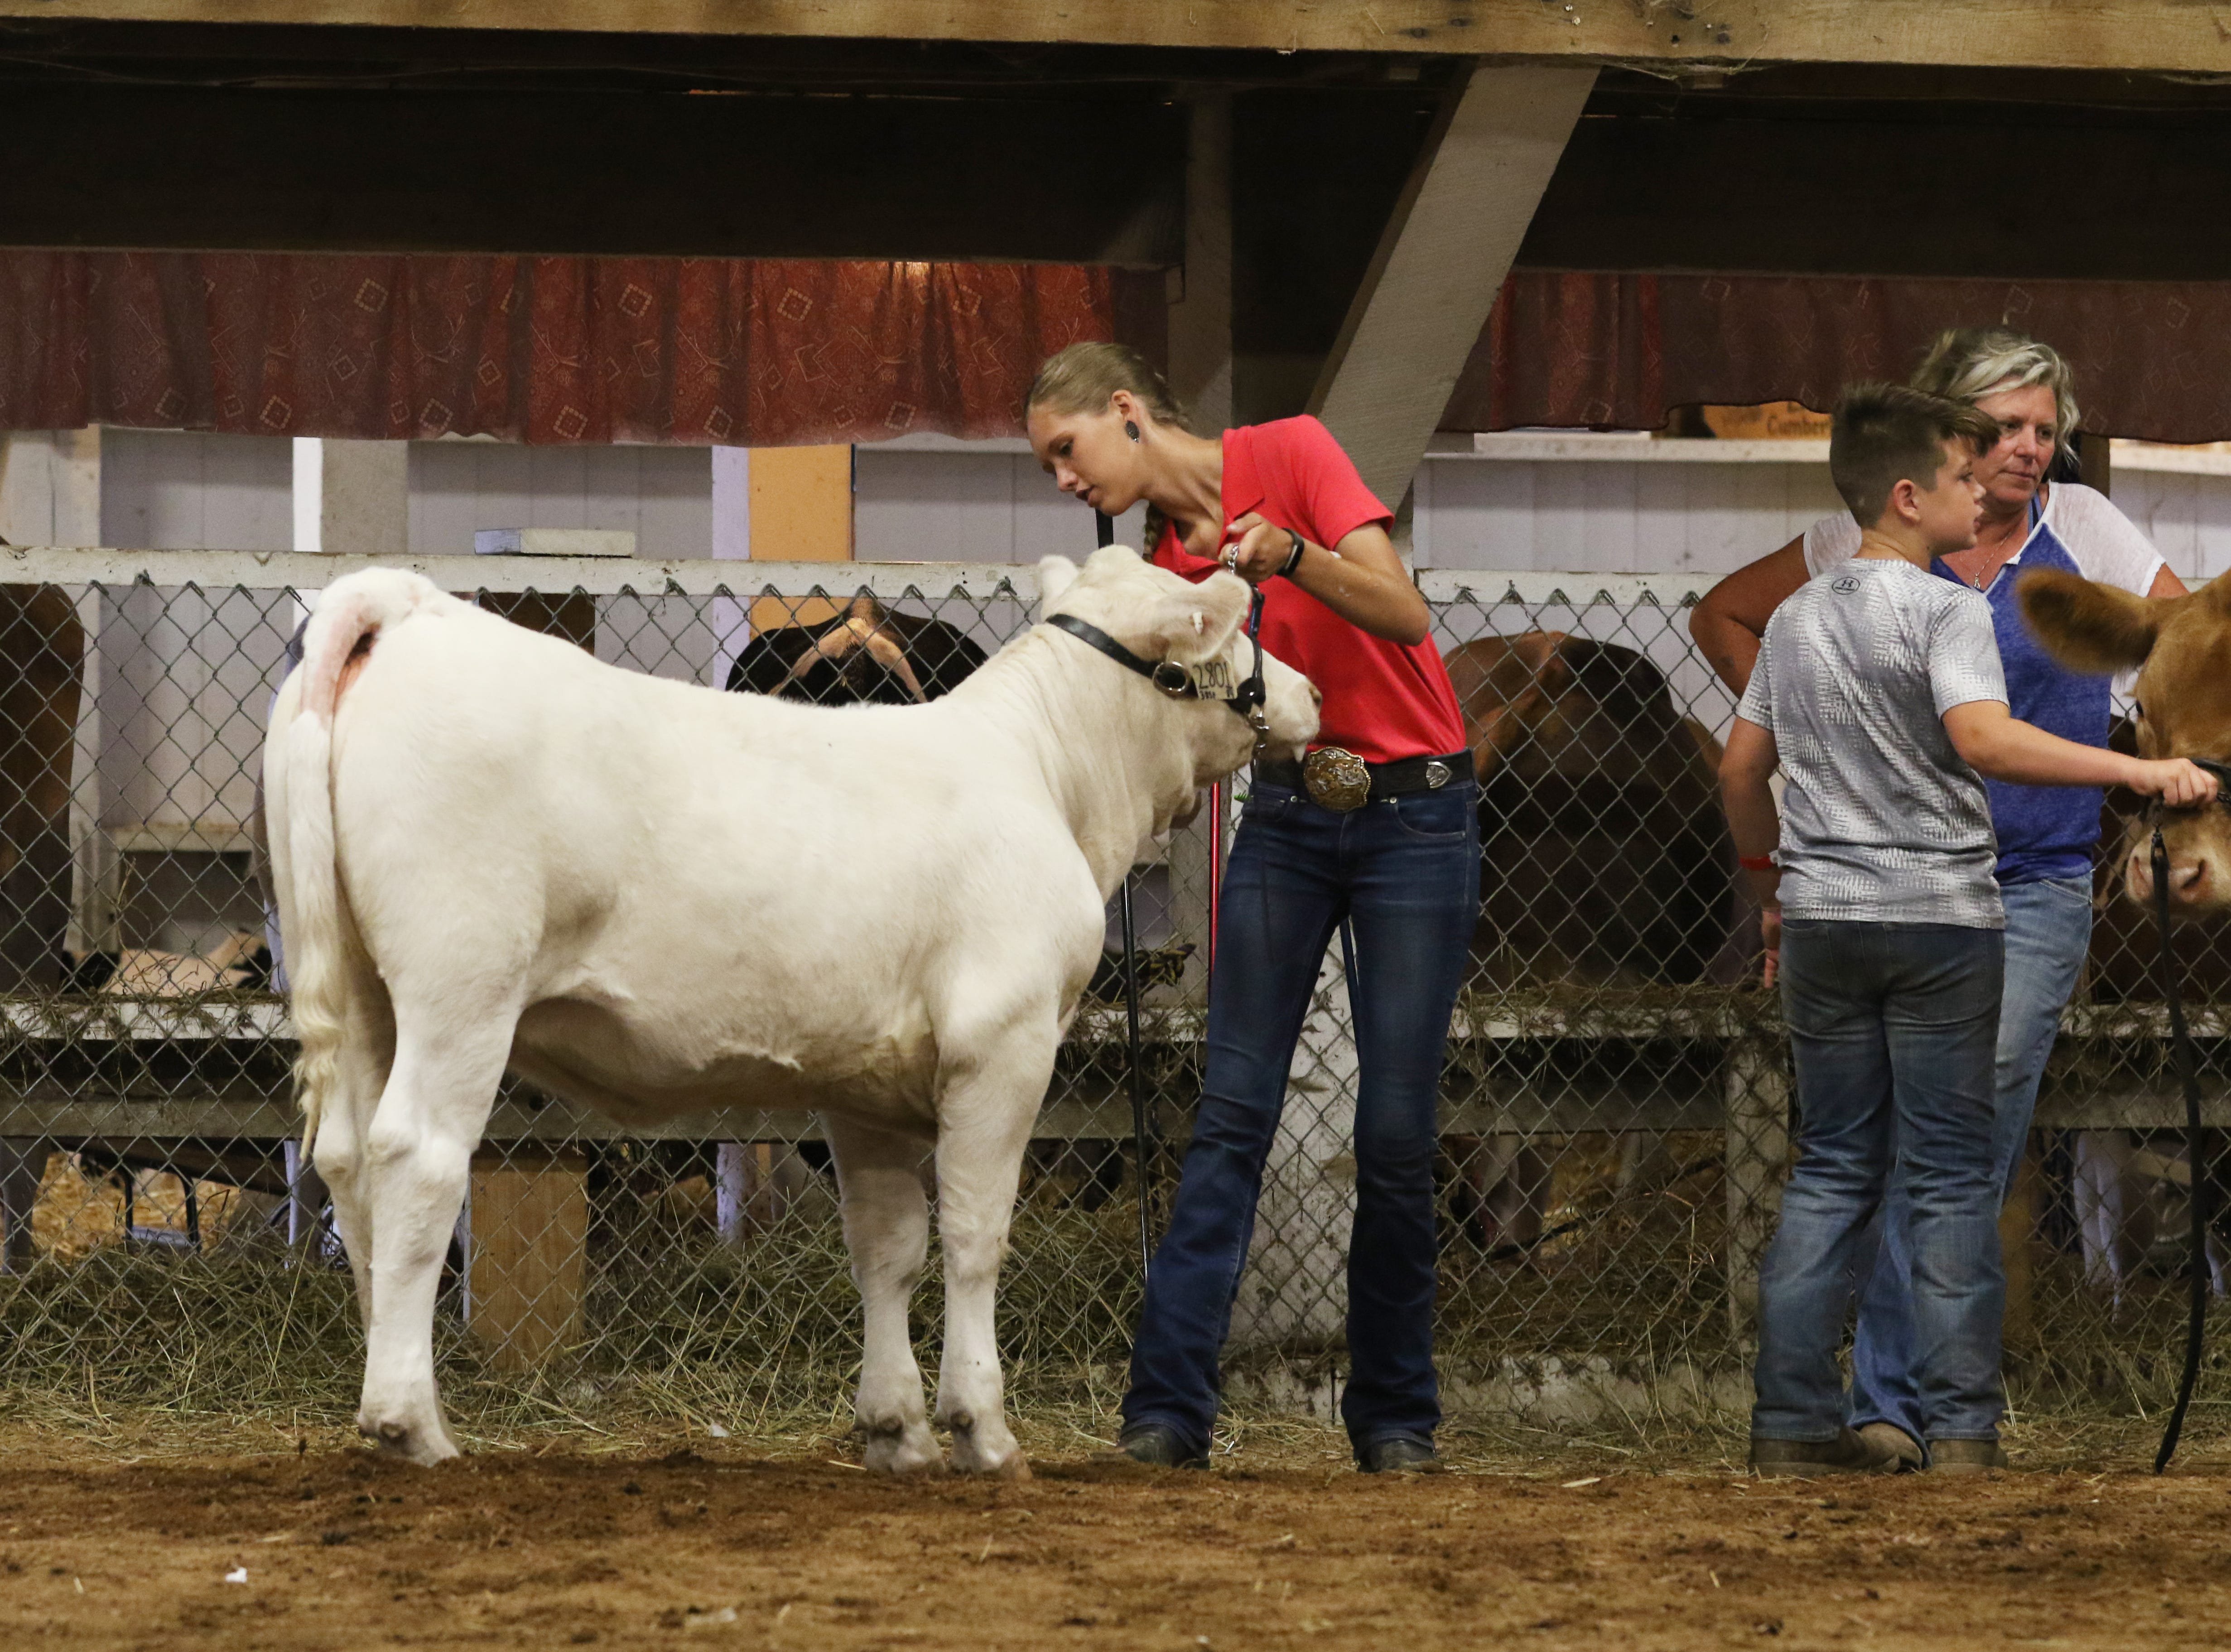 Camryn Caplinger shows a steer during the Showman of Showmen competition at the Muskingum County Fair on Friday.